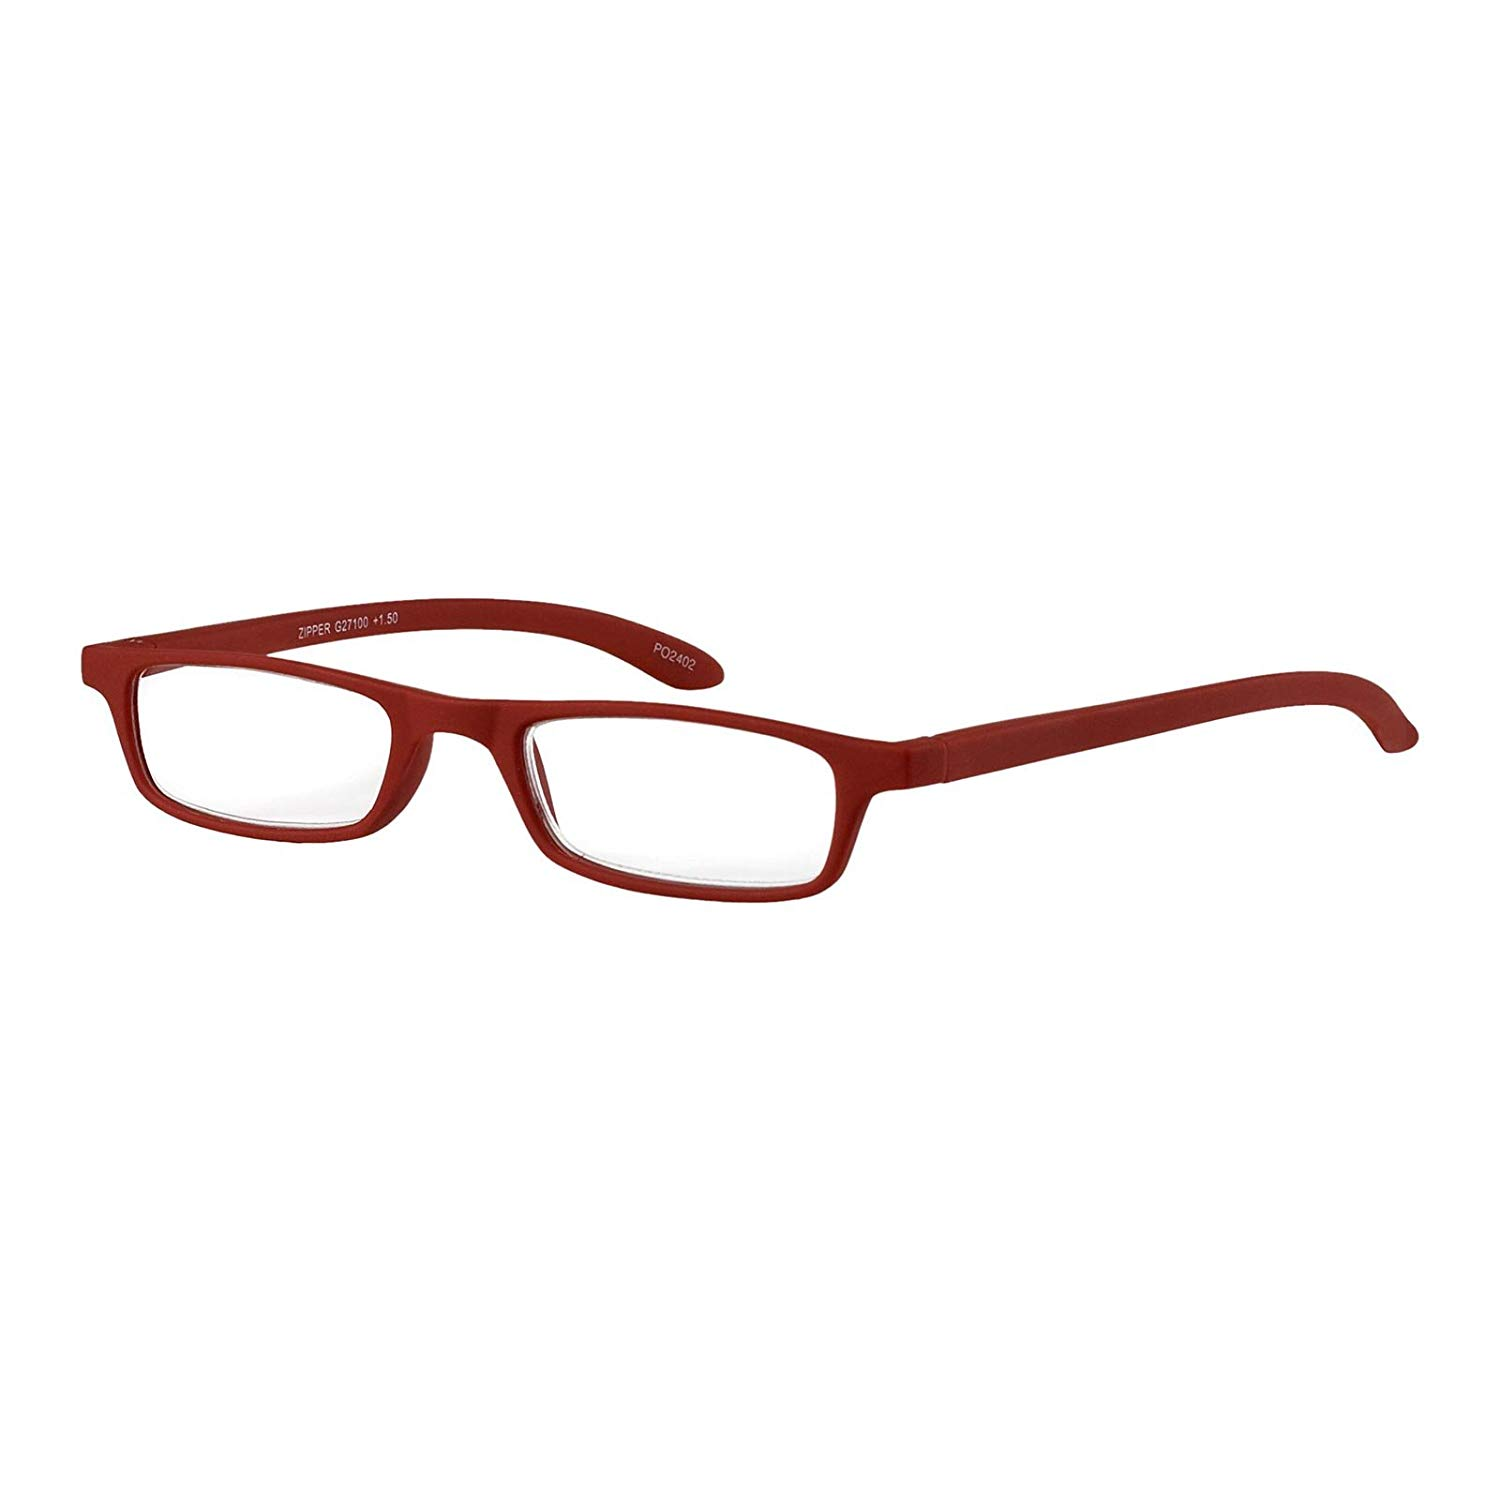 a168edeca9d53 Get Quotations · I NEED YOU Rectangular Reading Glasses Red Zipper Designer Frames  For Men   Women With Spring